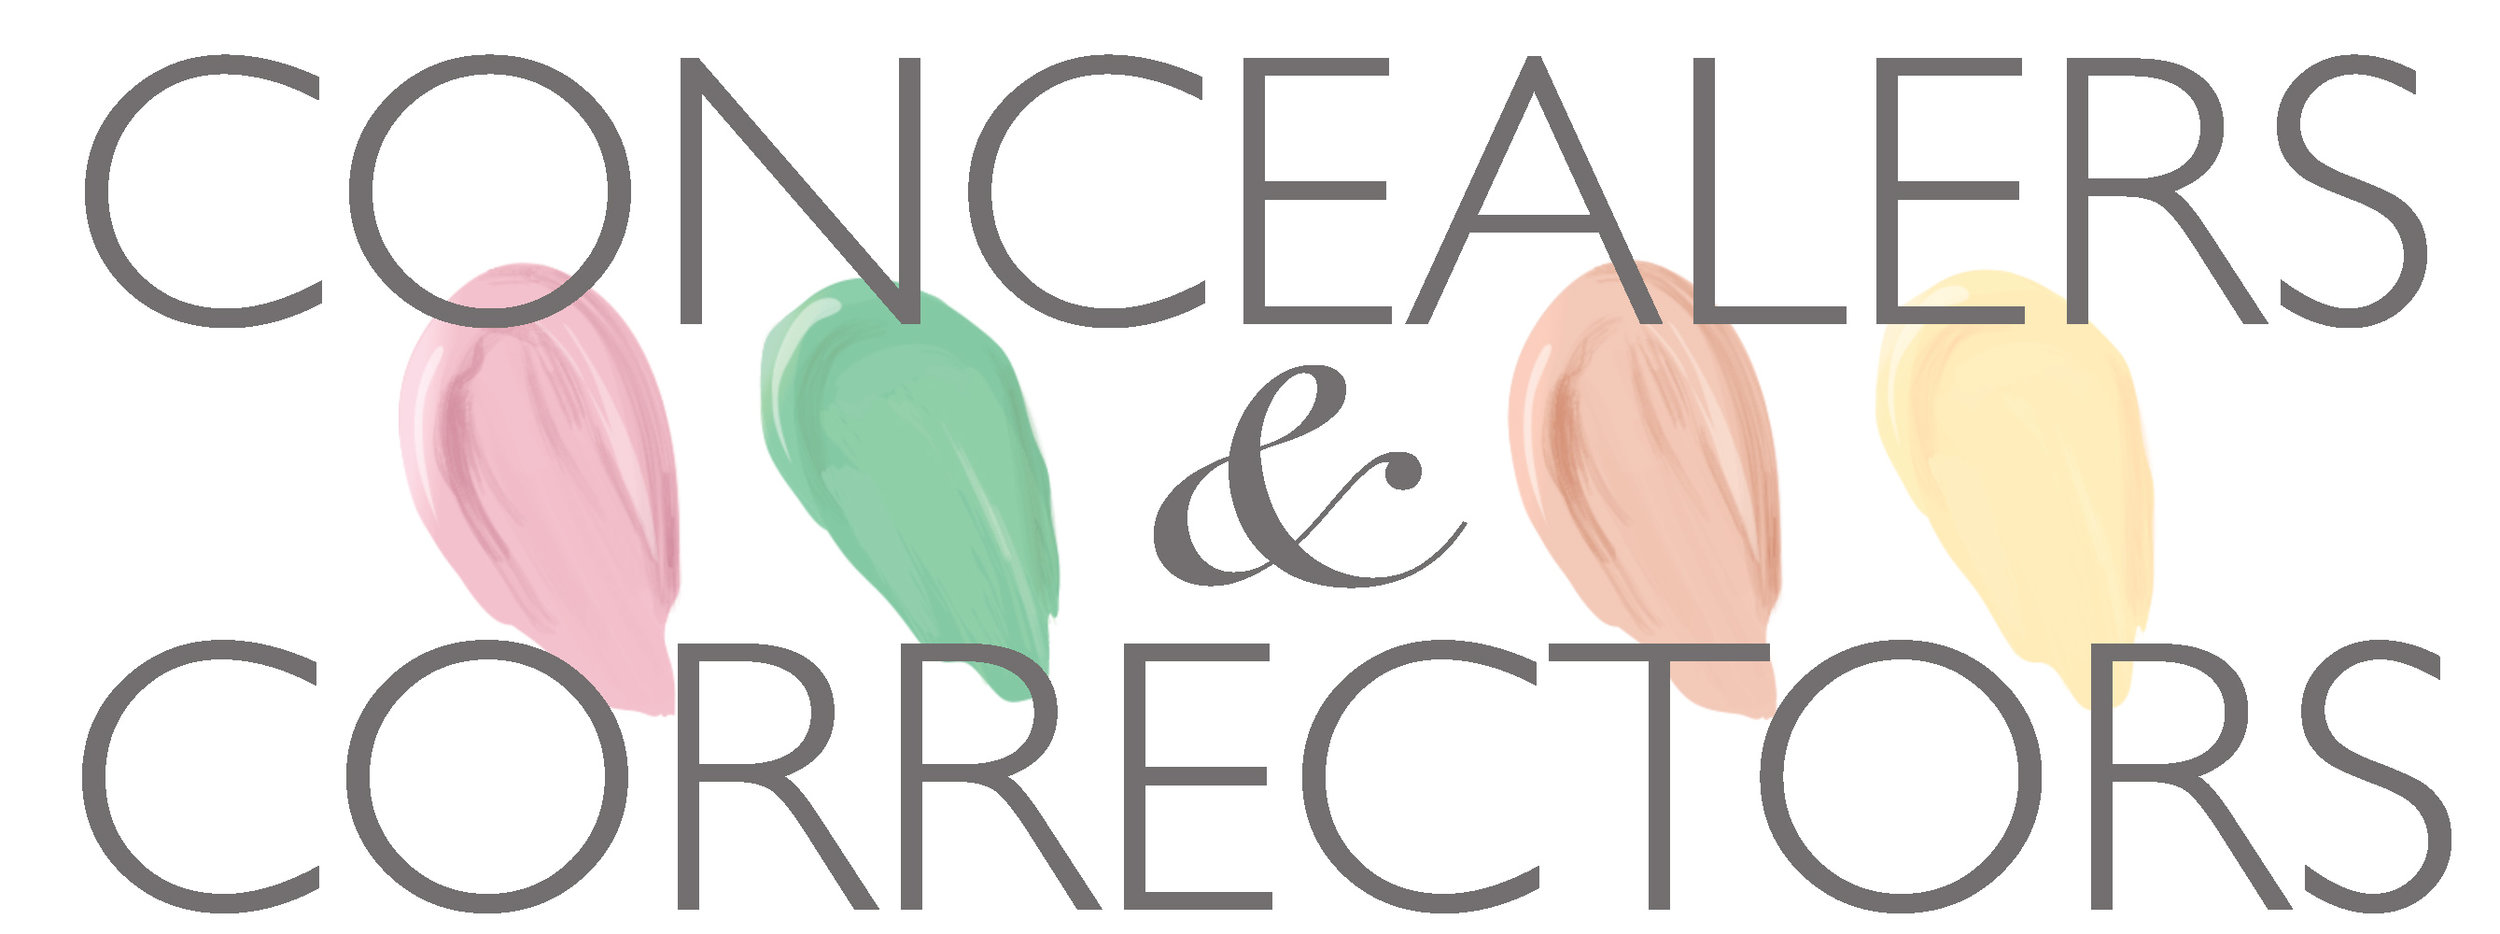 concealers and correctors1.jpg